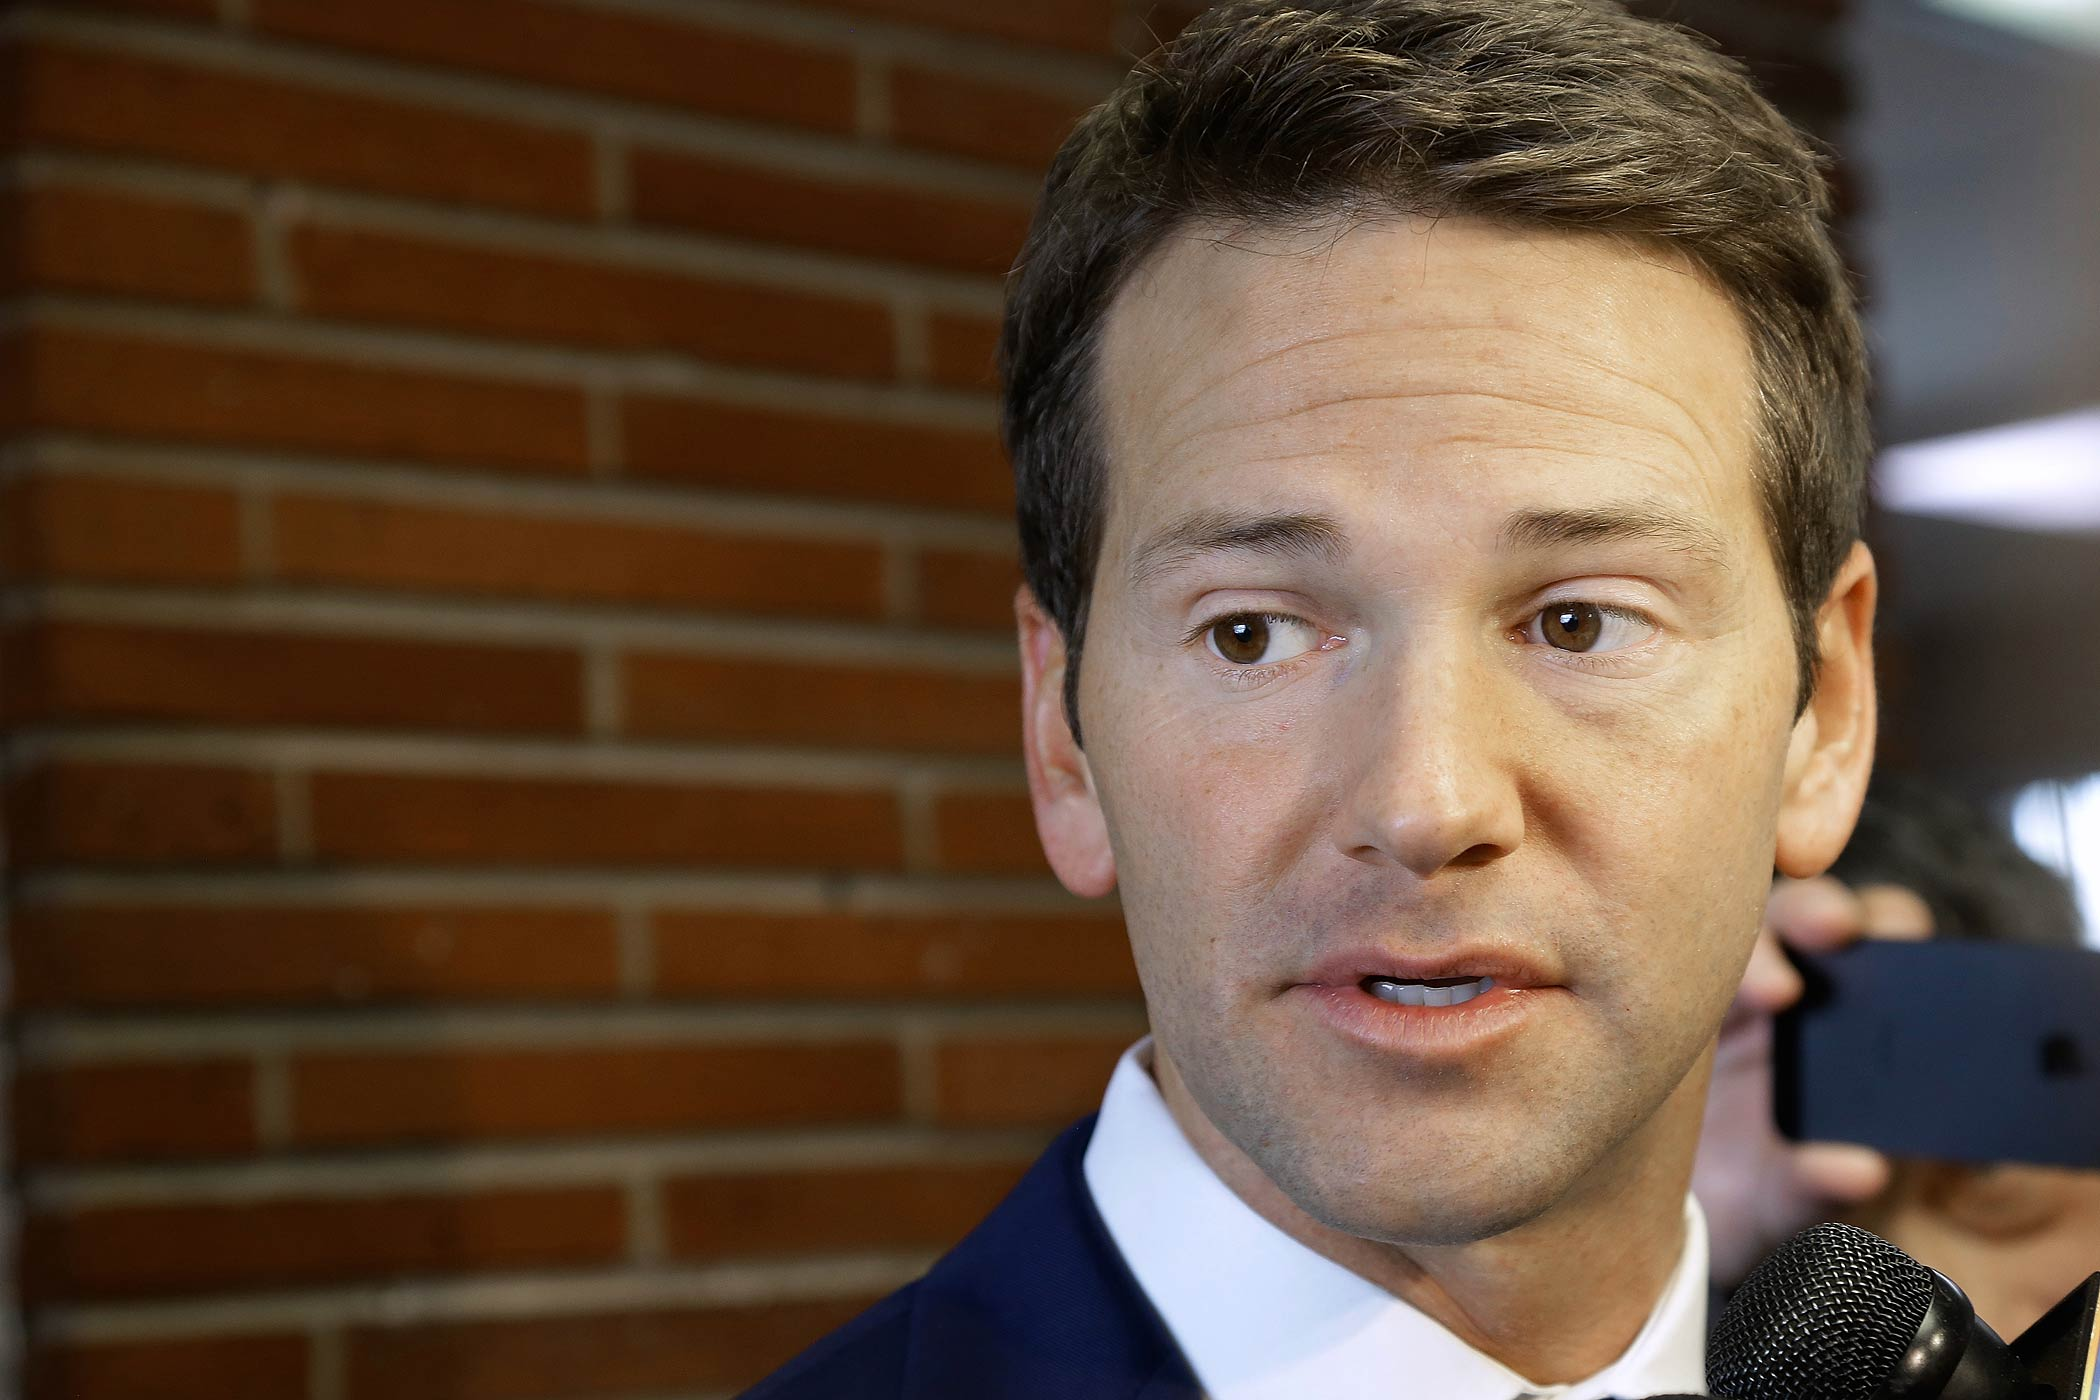 Representative Aaron Schock speaks to reporters in Peoria, Ill., on Feb. 6, 2015